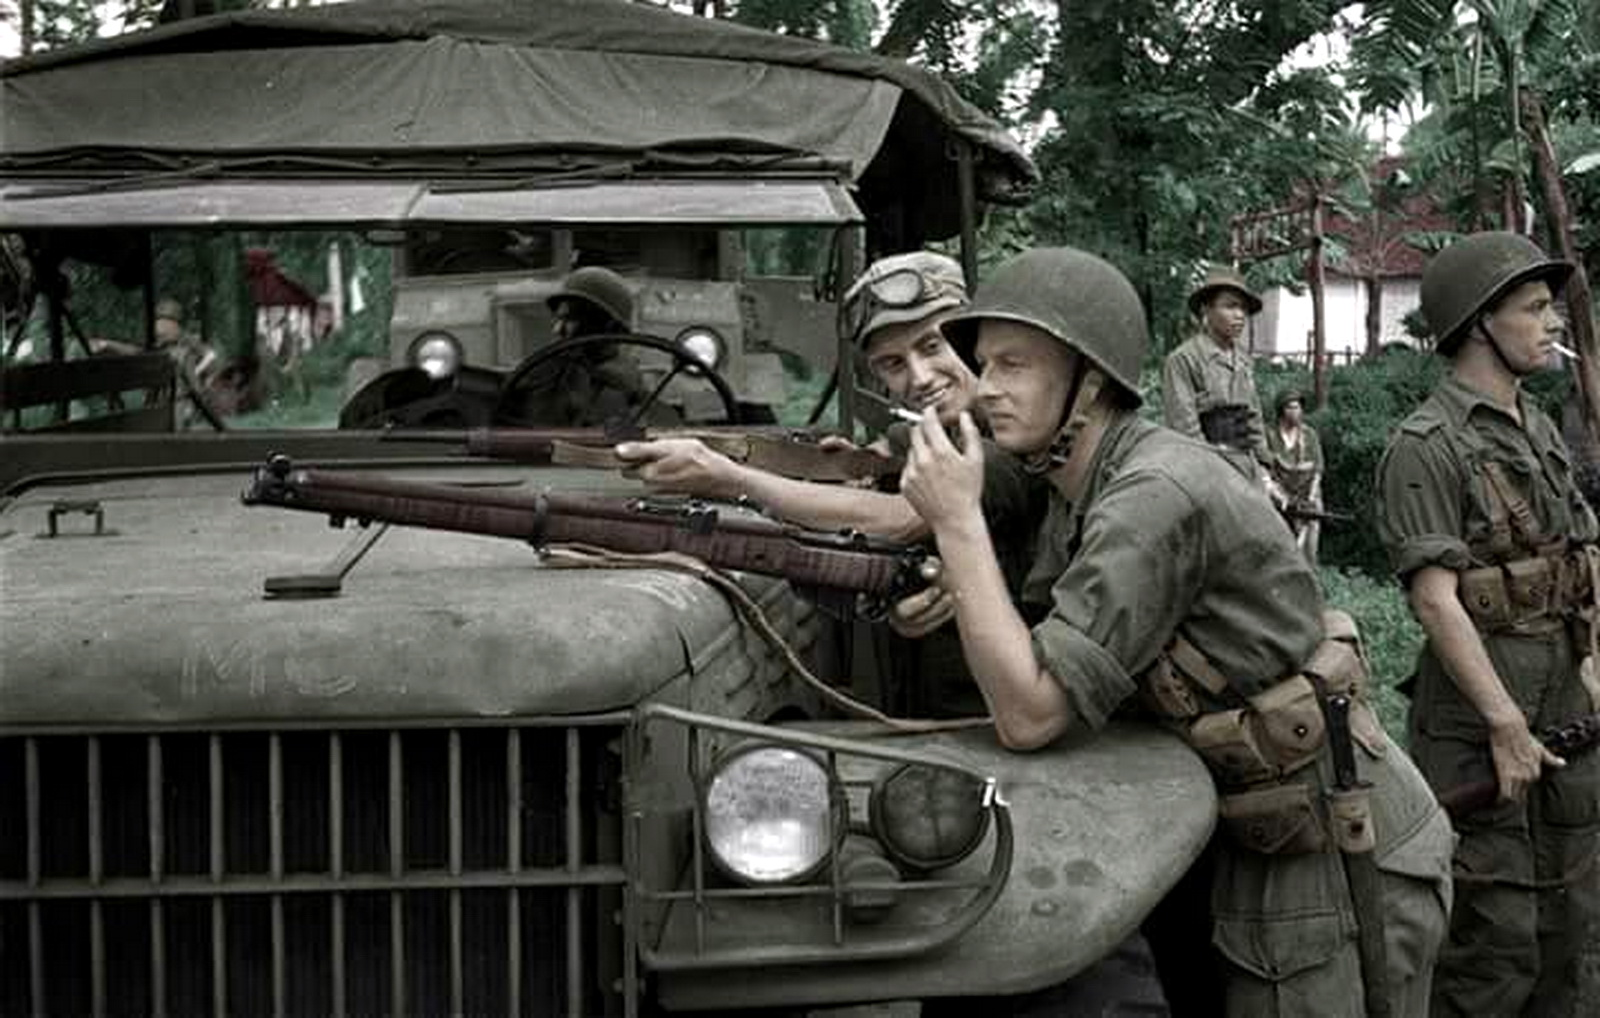 Dodge trucks in wwii - Dodge Truck With Dutch Troops